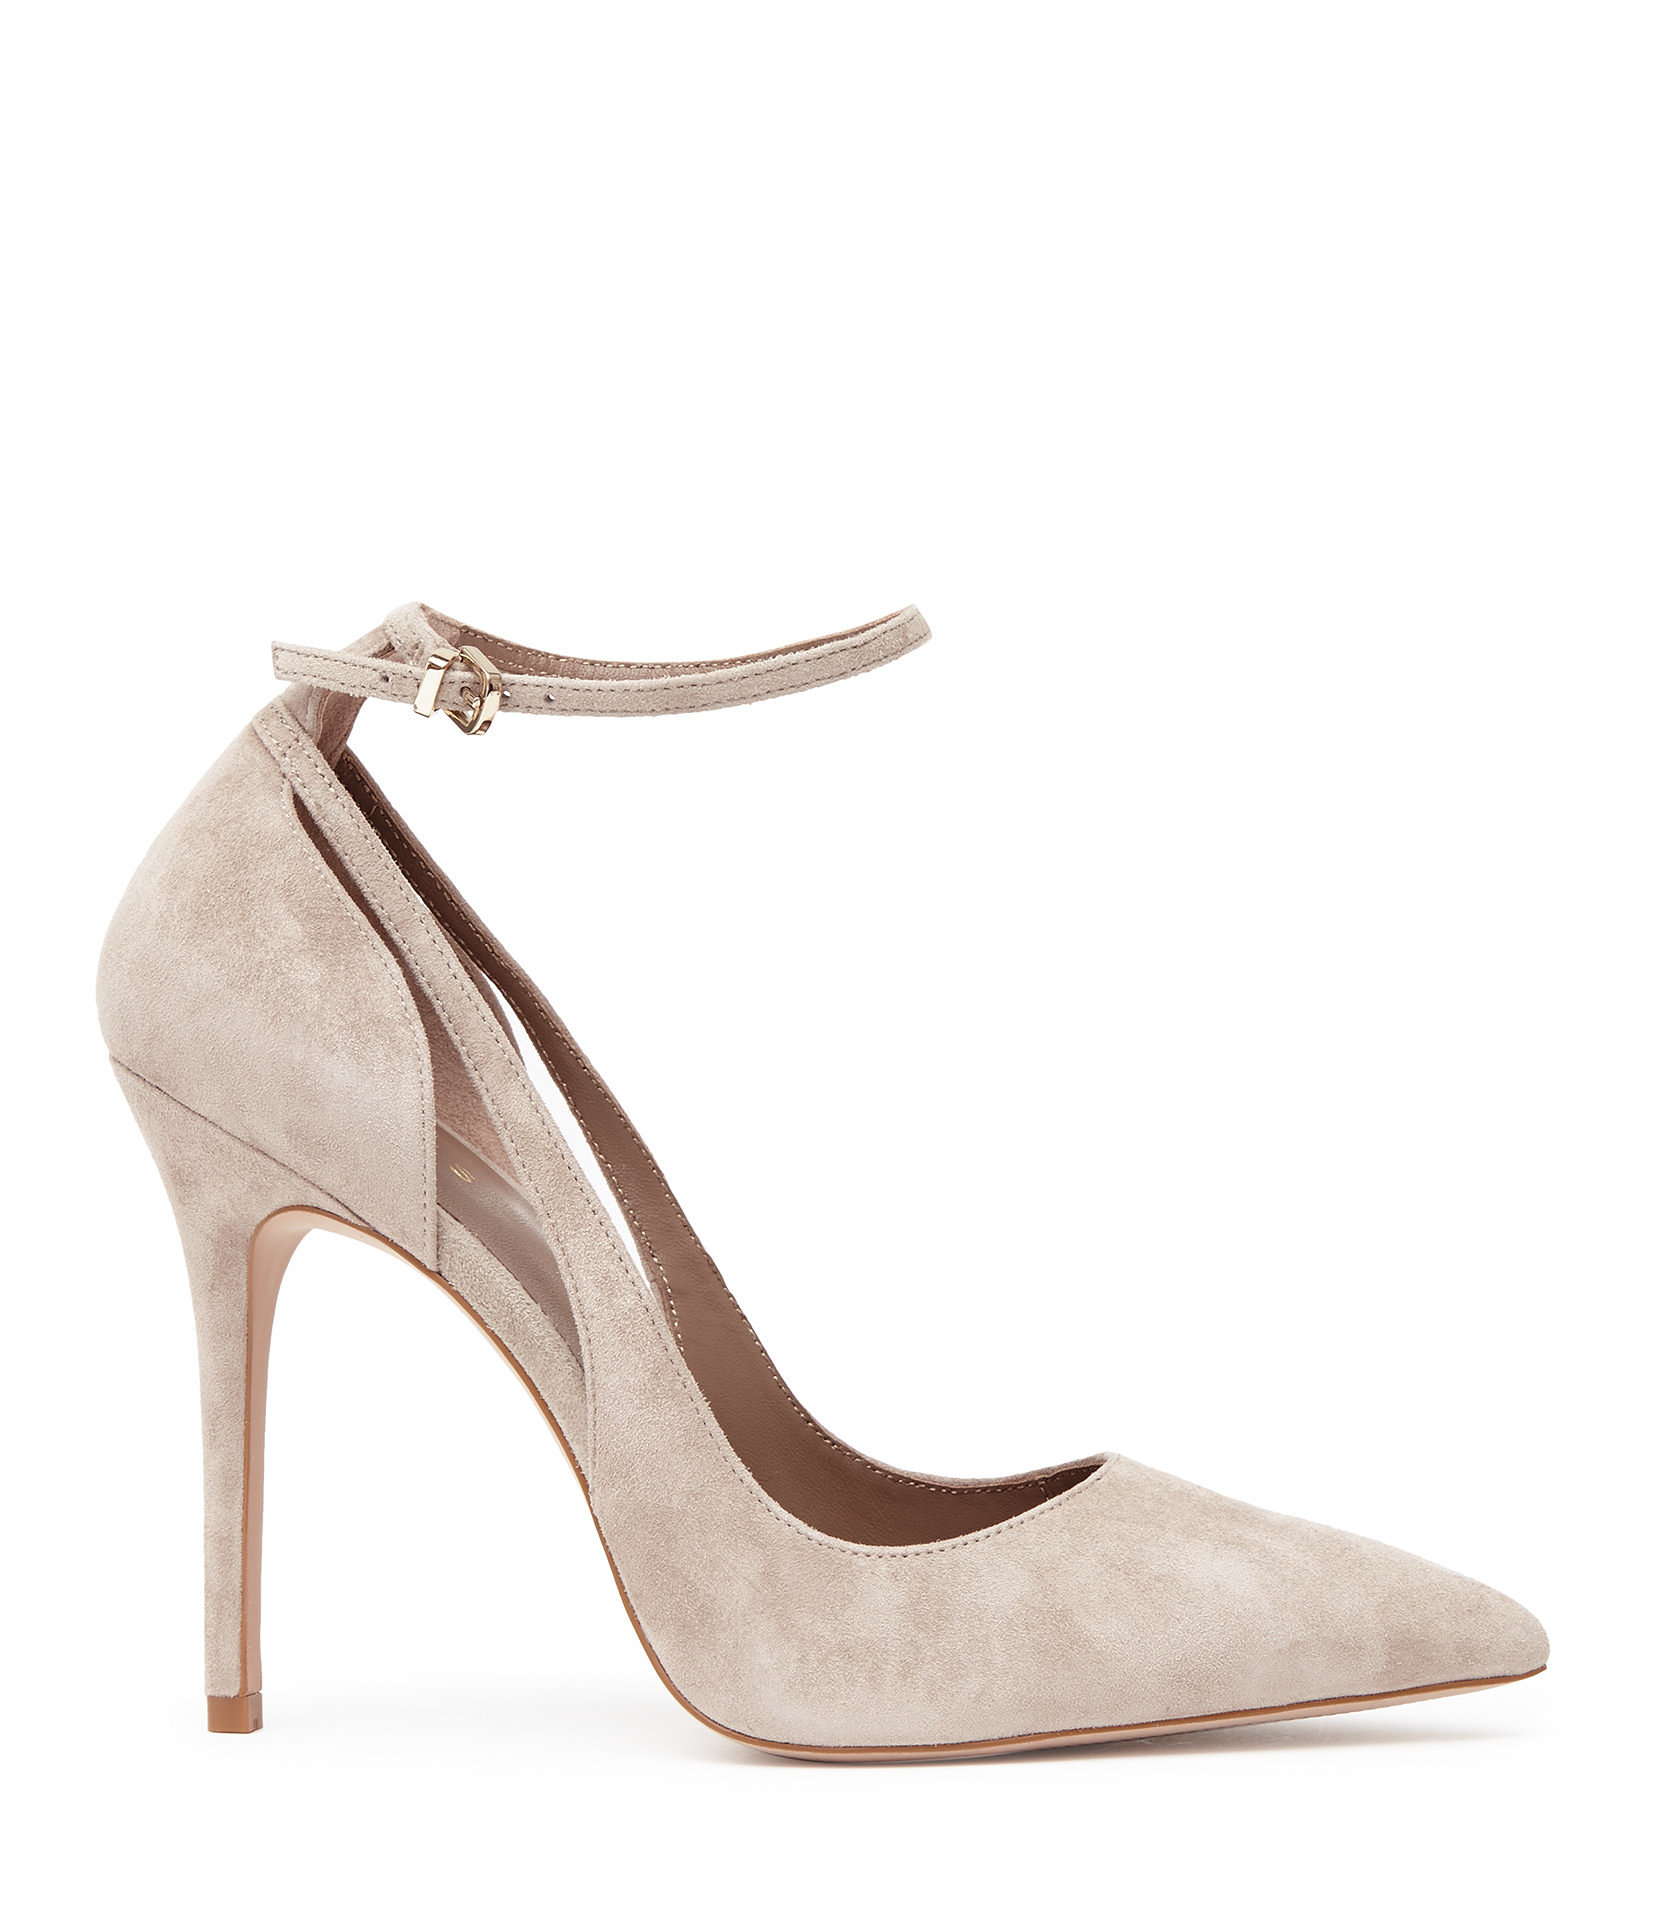 9f347ae303b Marla Suede Ankle-Strap Shoes